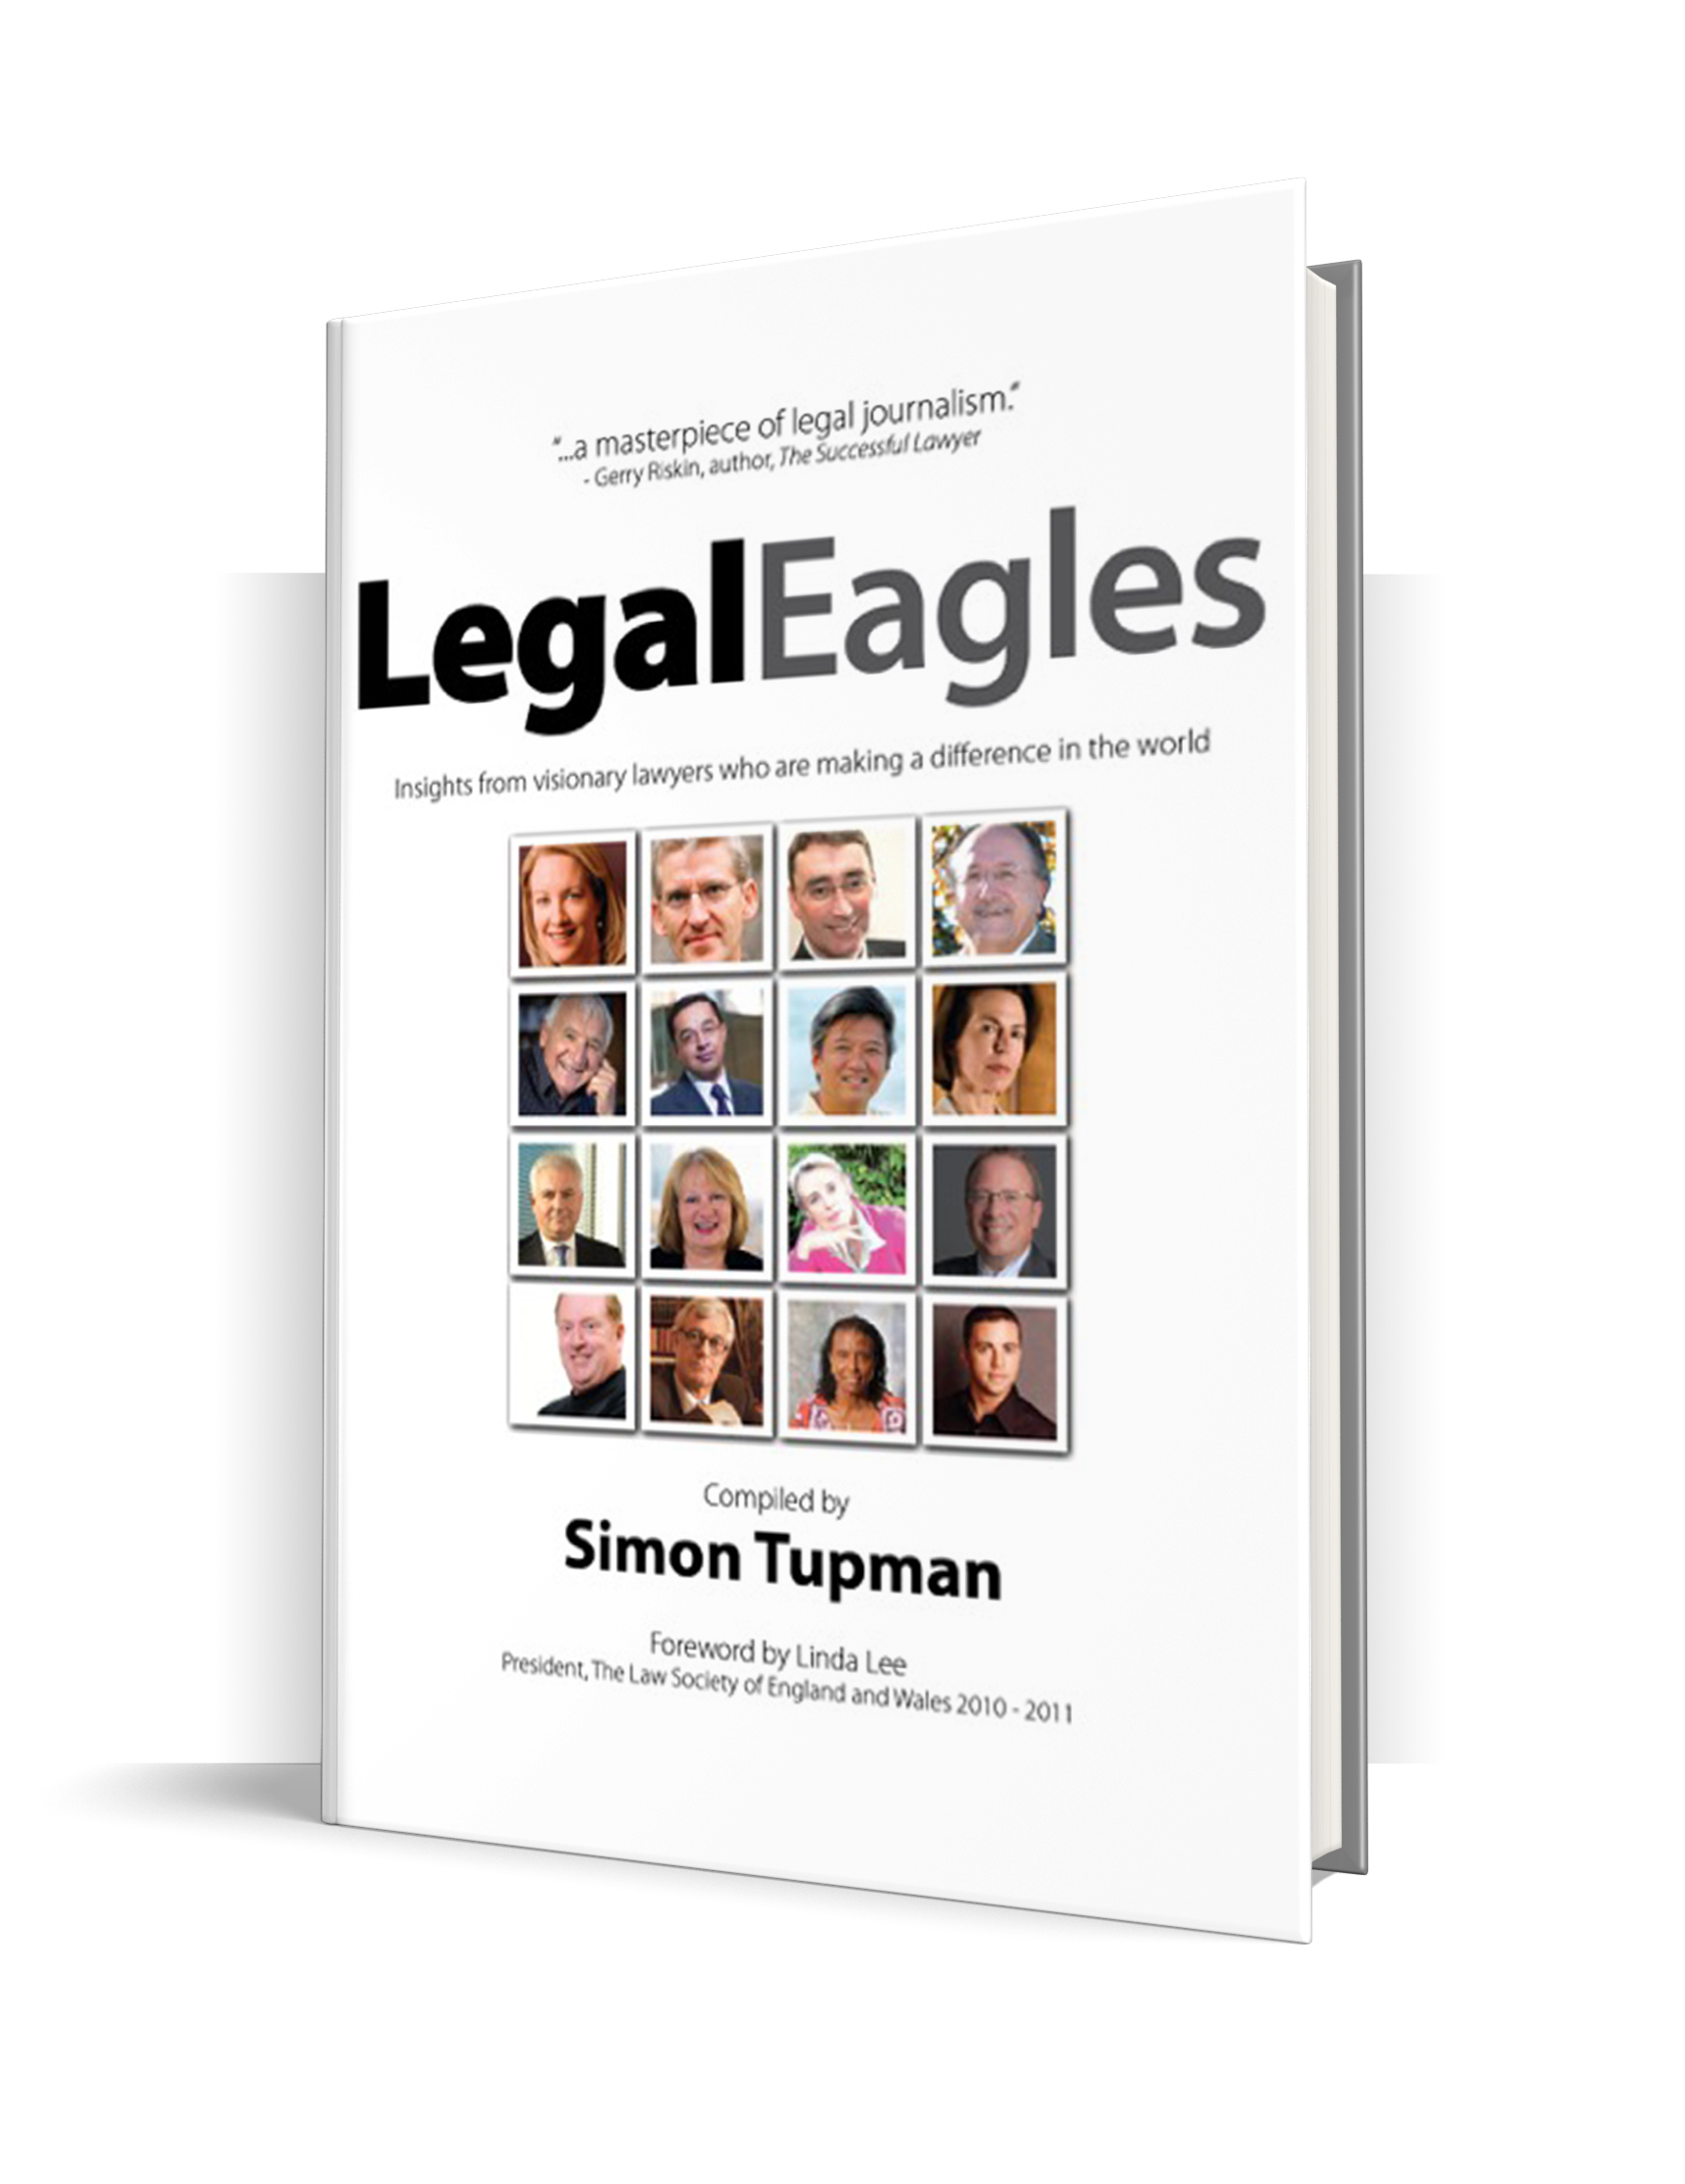 Legal Eagles - 'Legal Eagles' profiles sixteen visionary lawyers from around the globe who are changing people's lives and making a difference in the world. Interviewed by Simon Tupman, they offer candid insights into their careers and share the secrets of their success. Their stories dispel many myths about the legal profession and prove that lawyers can, and do, make the world a better place.